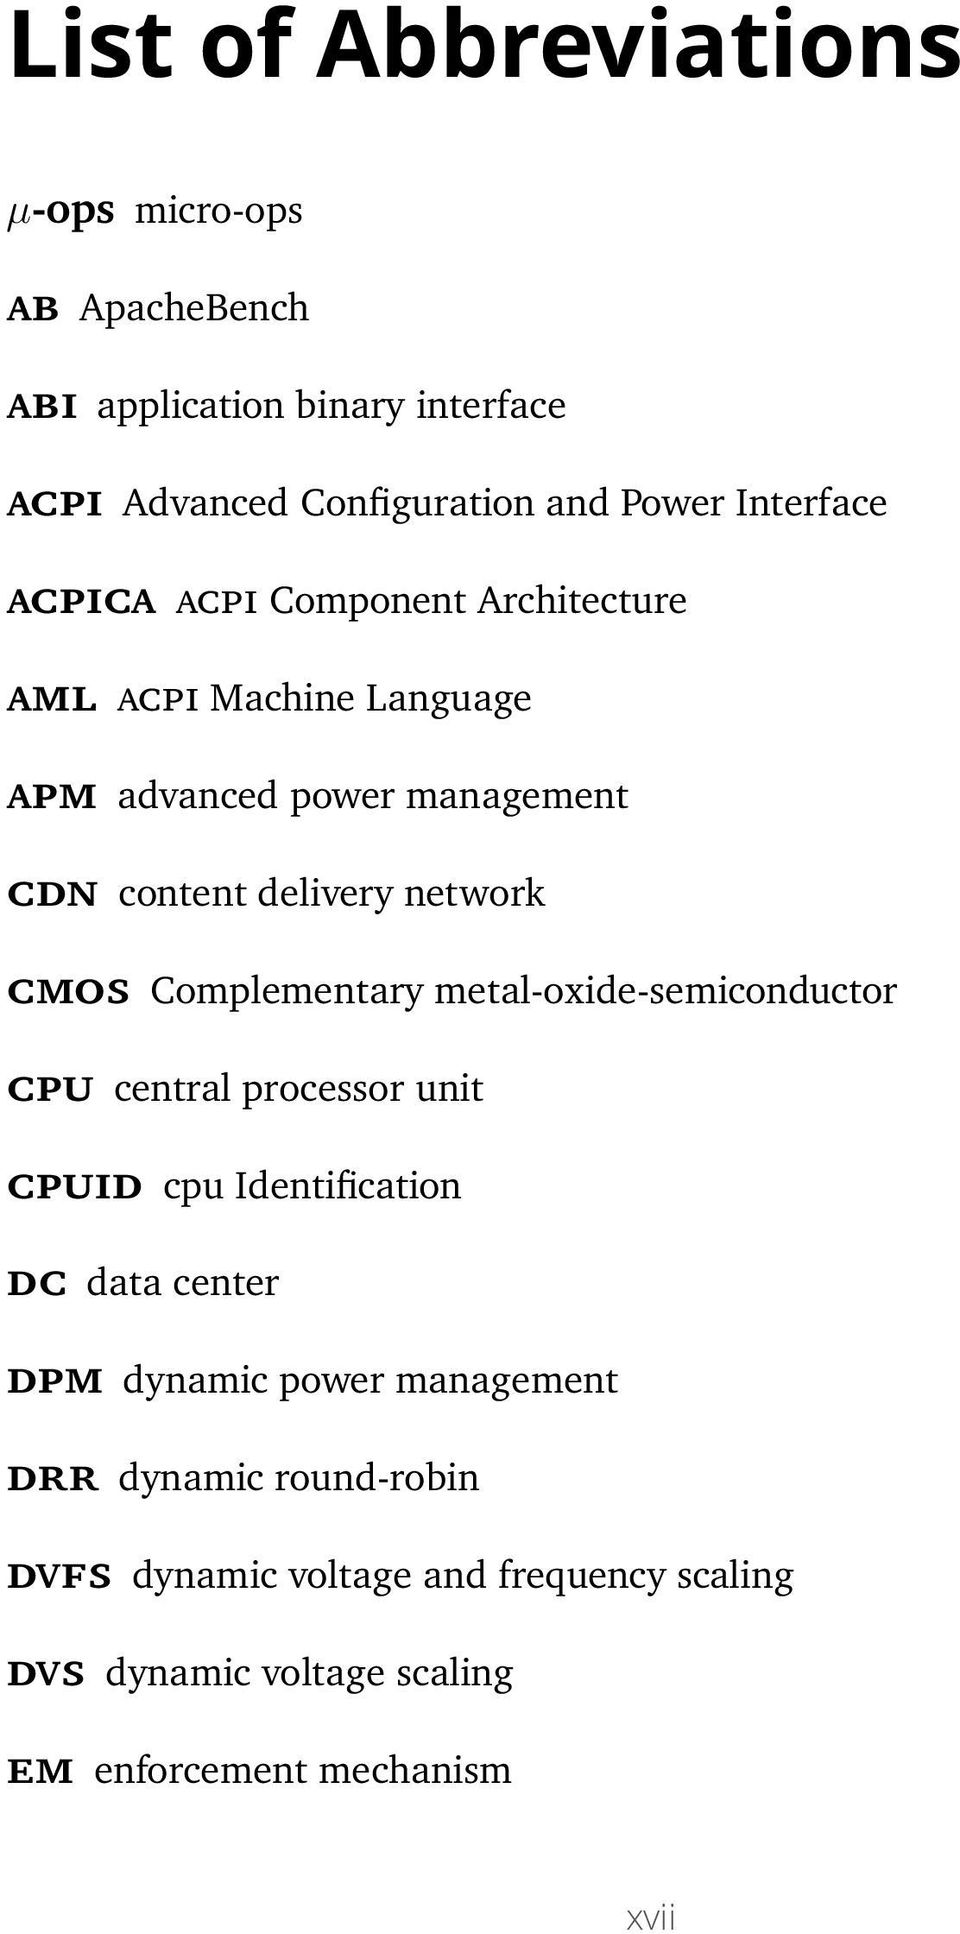 cmos Complementary metal-oxide-semiconductor cpu central processor unit cpuid cpu Identification dc data center dpm dynamic power